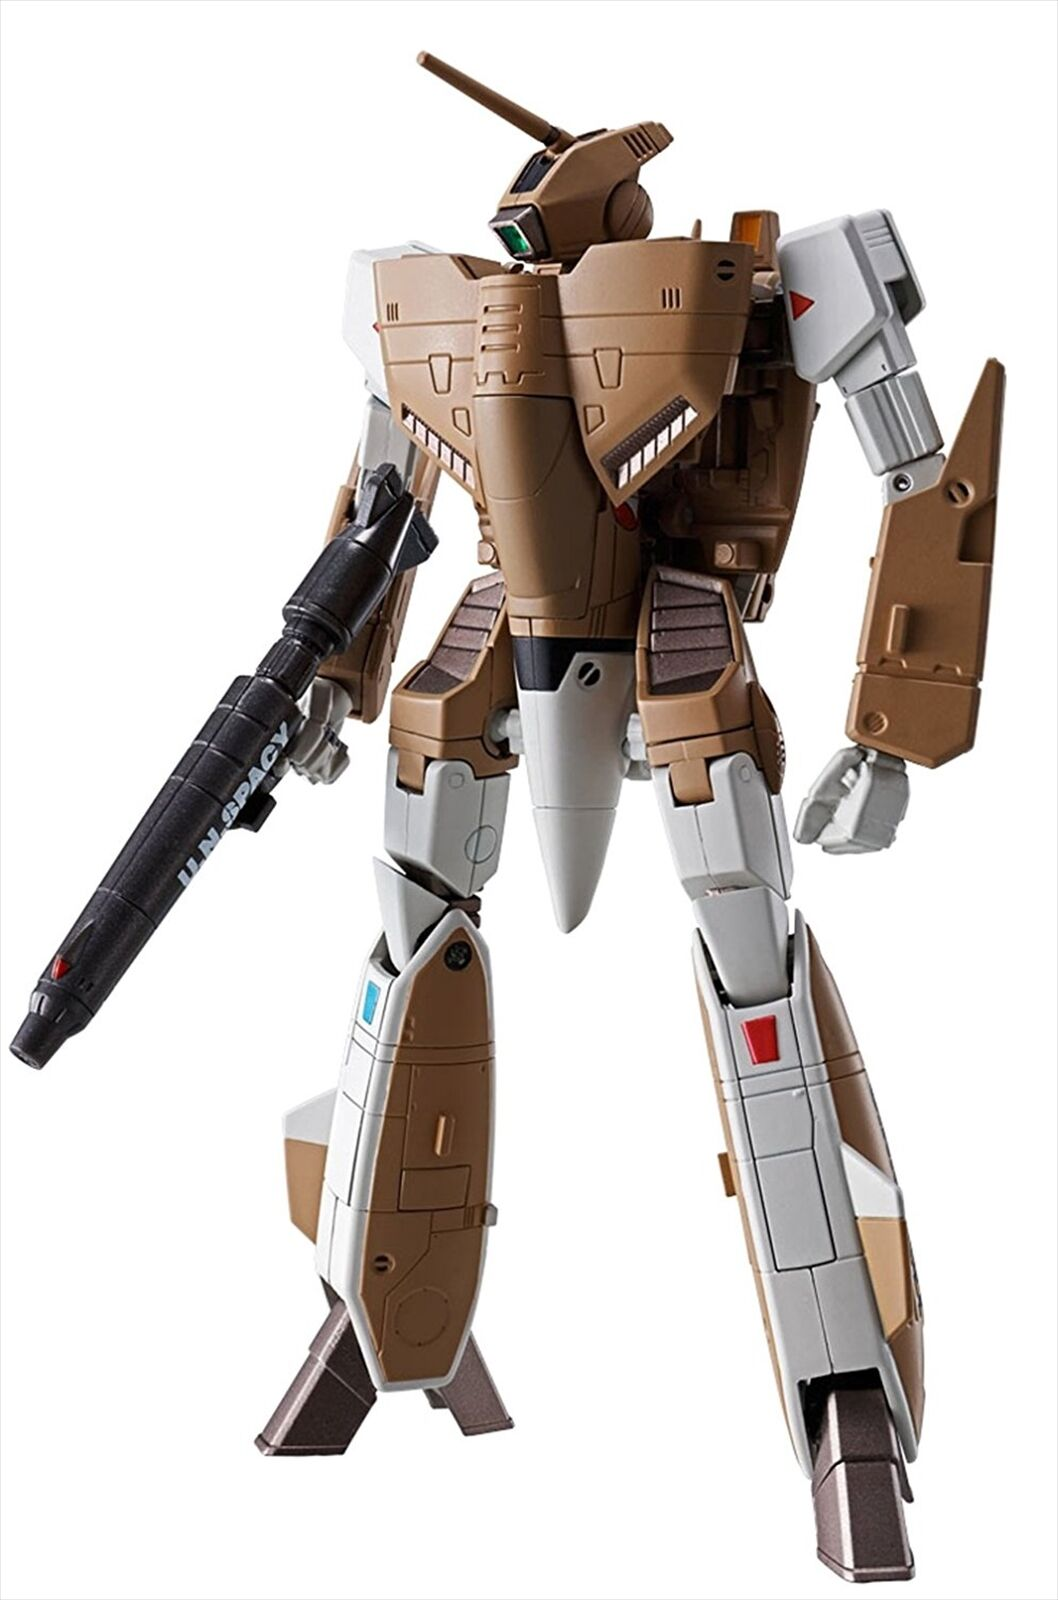 Bandai HI-METAL R R R Macross VF-1A Valkyrie Standard Production Model Action Figure ef8865